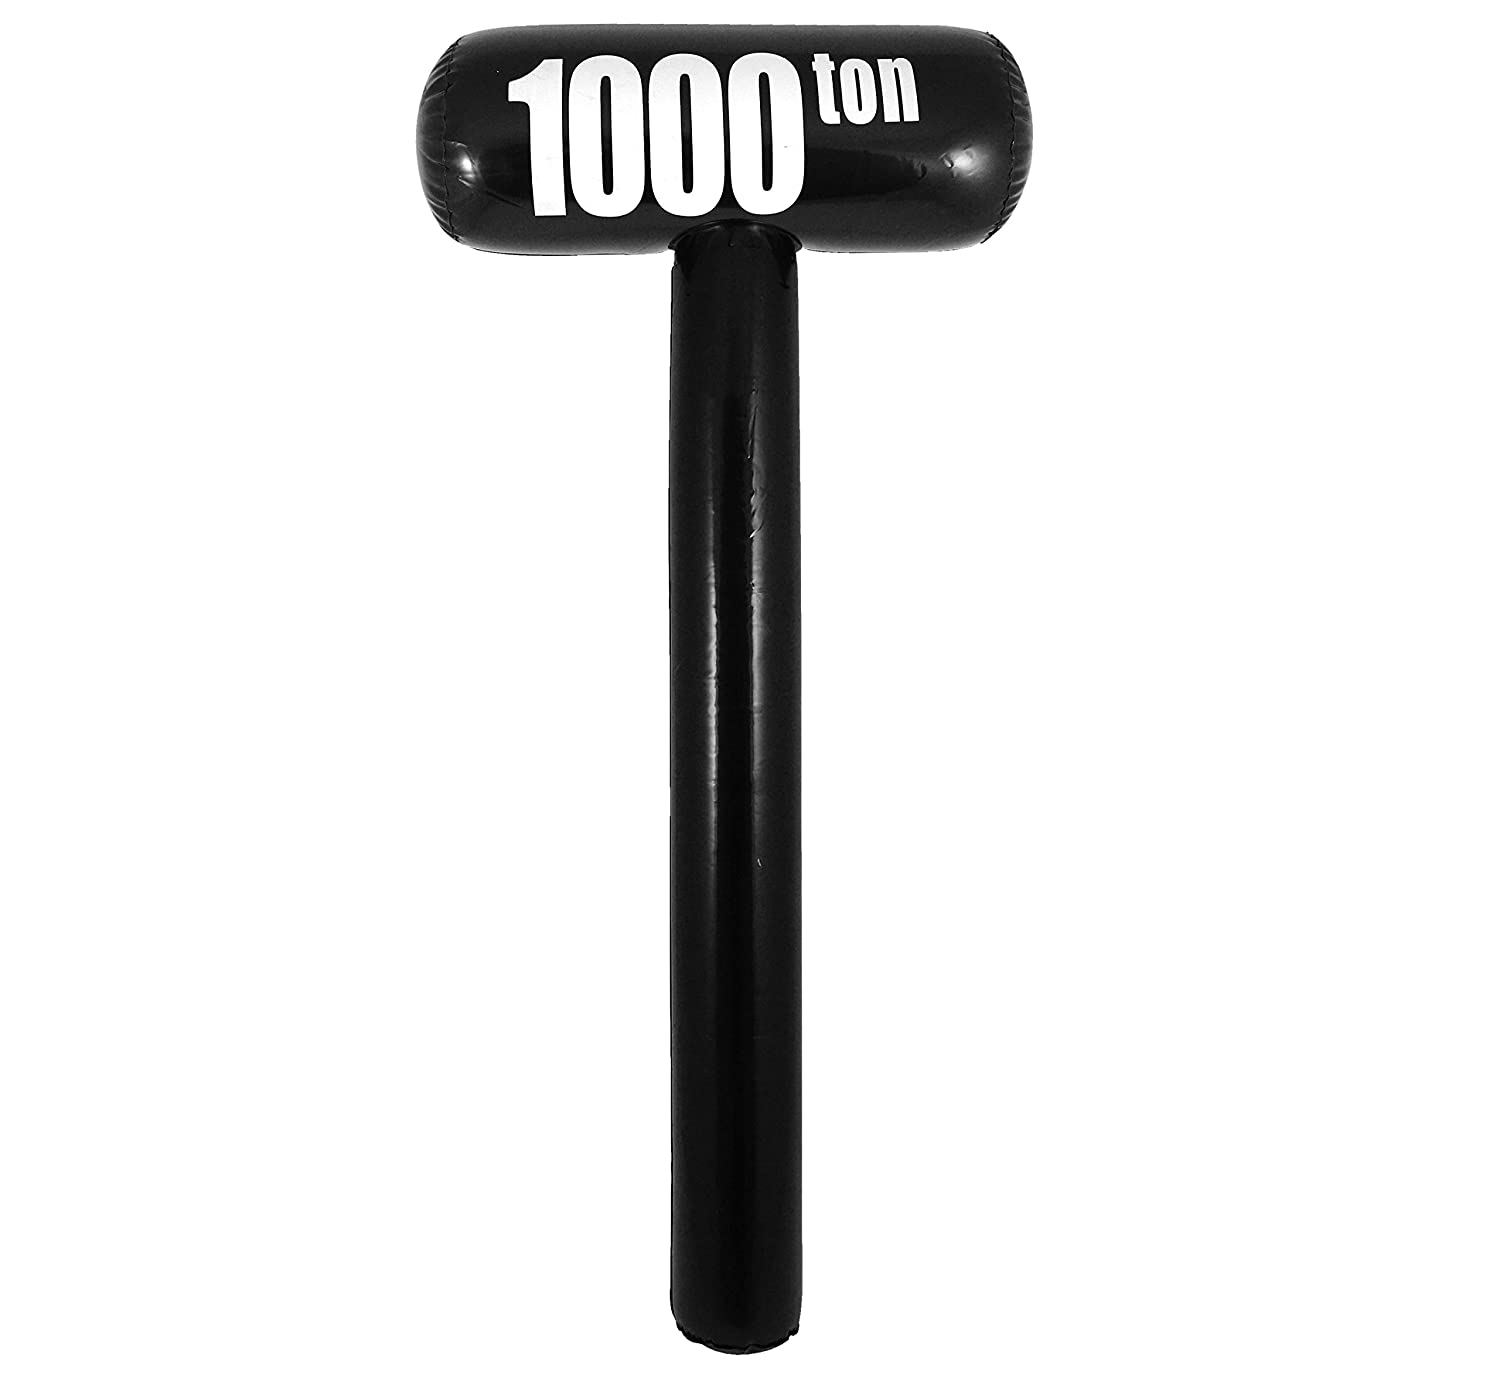 Lollipop ropa hinchable mazo 1000 ton Martillo de broma ...